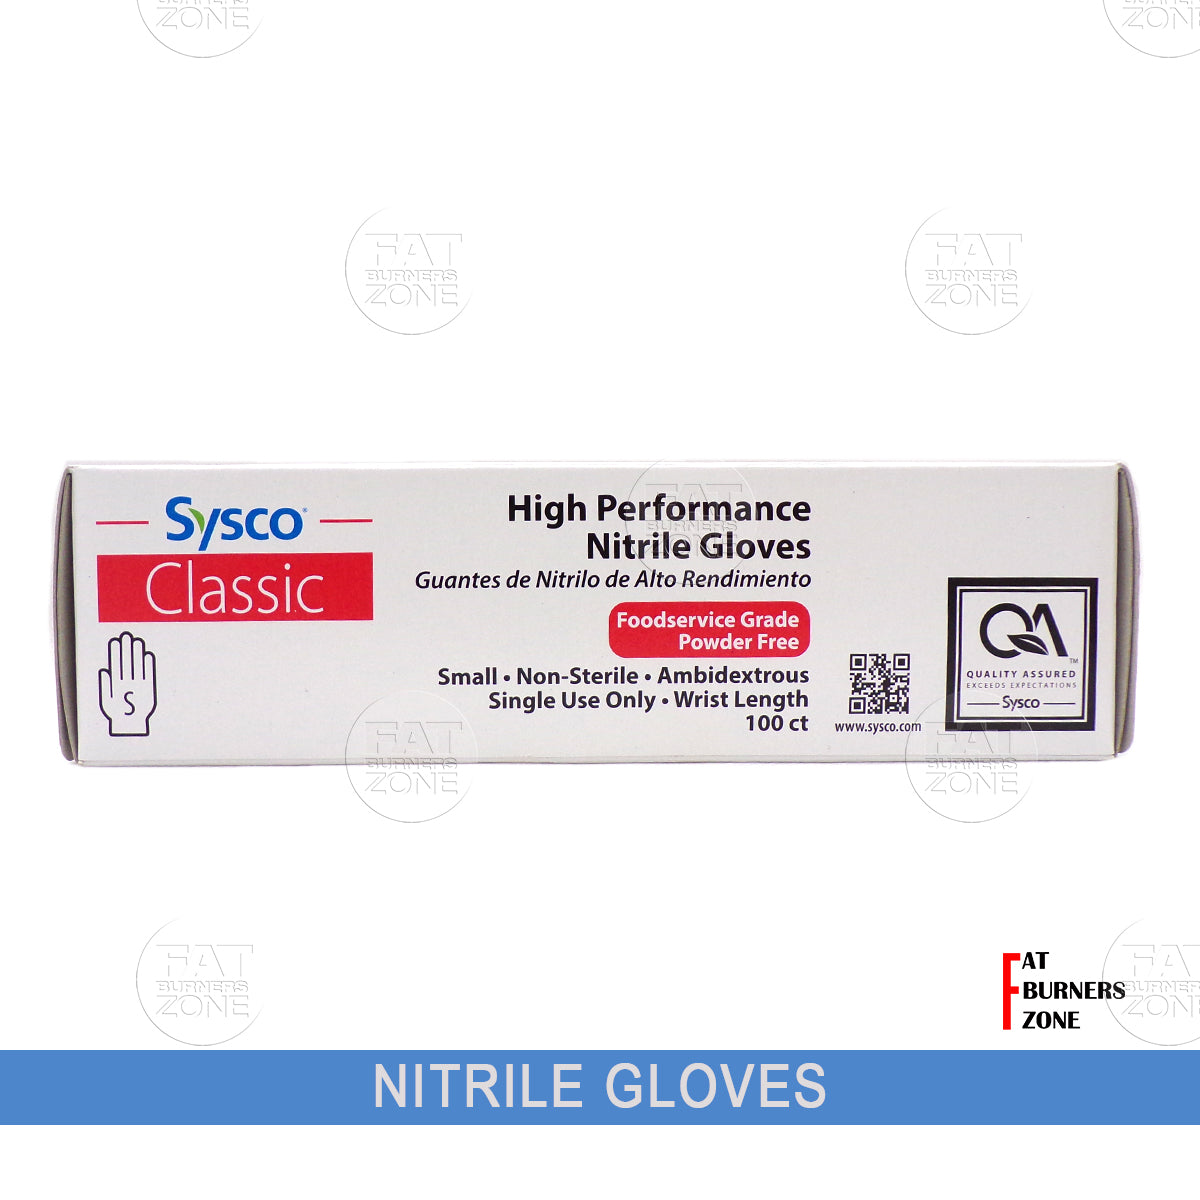 Sysco Nitrile High Performance Gloves